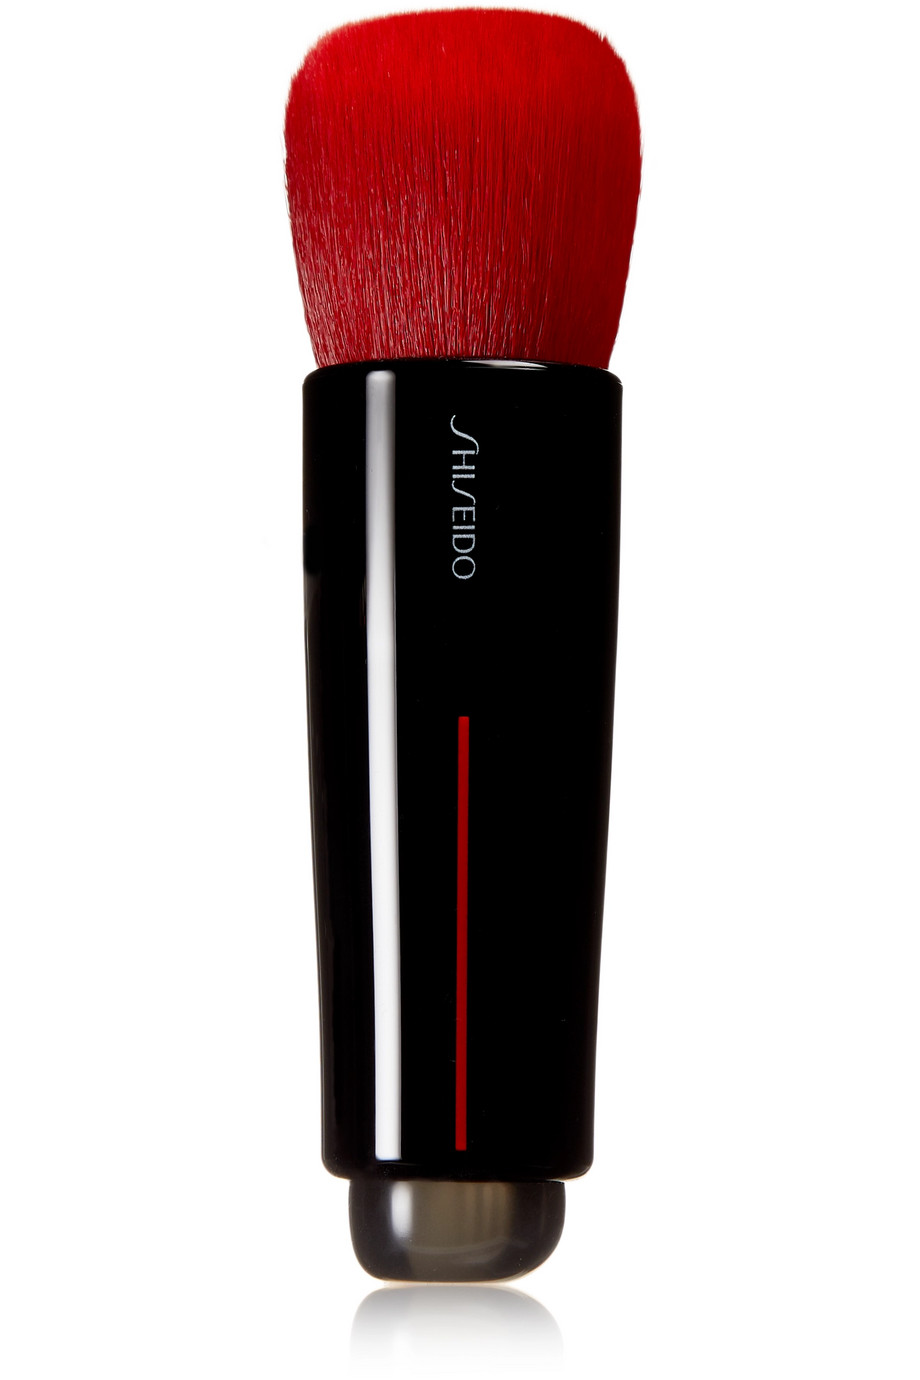 SHISEIDO Daiya Fude Face Duo Brush